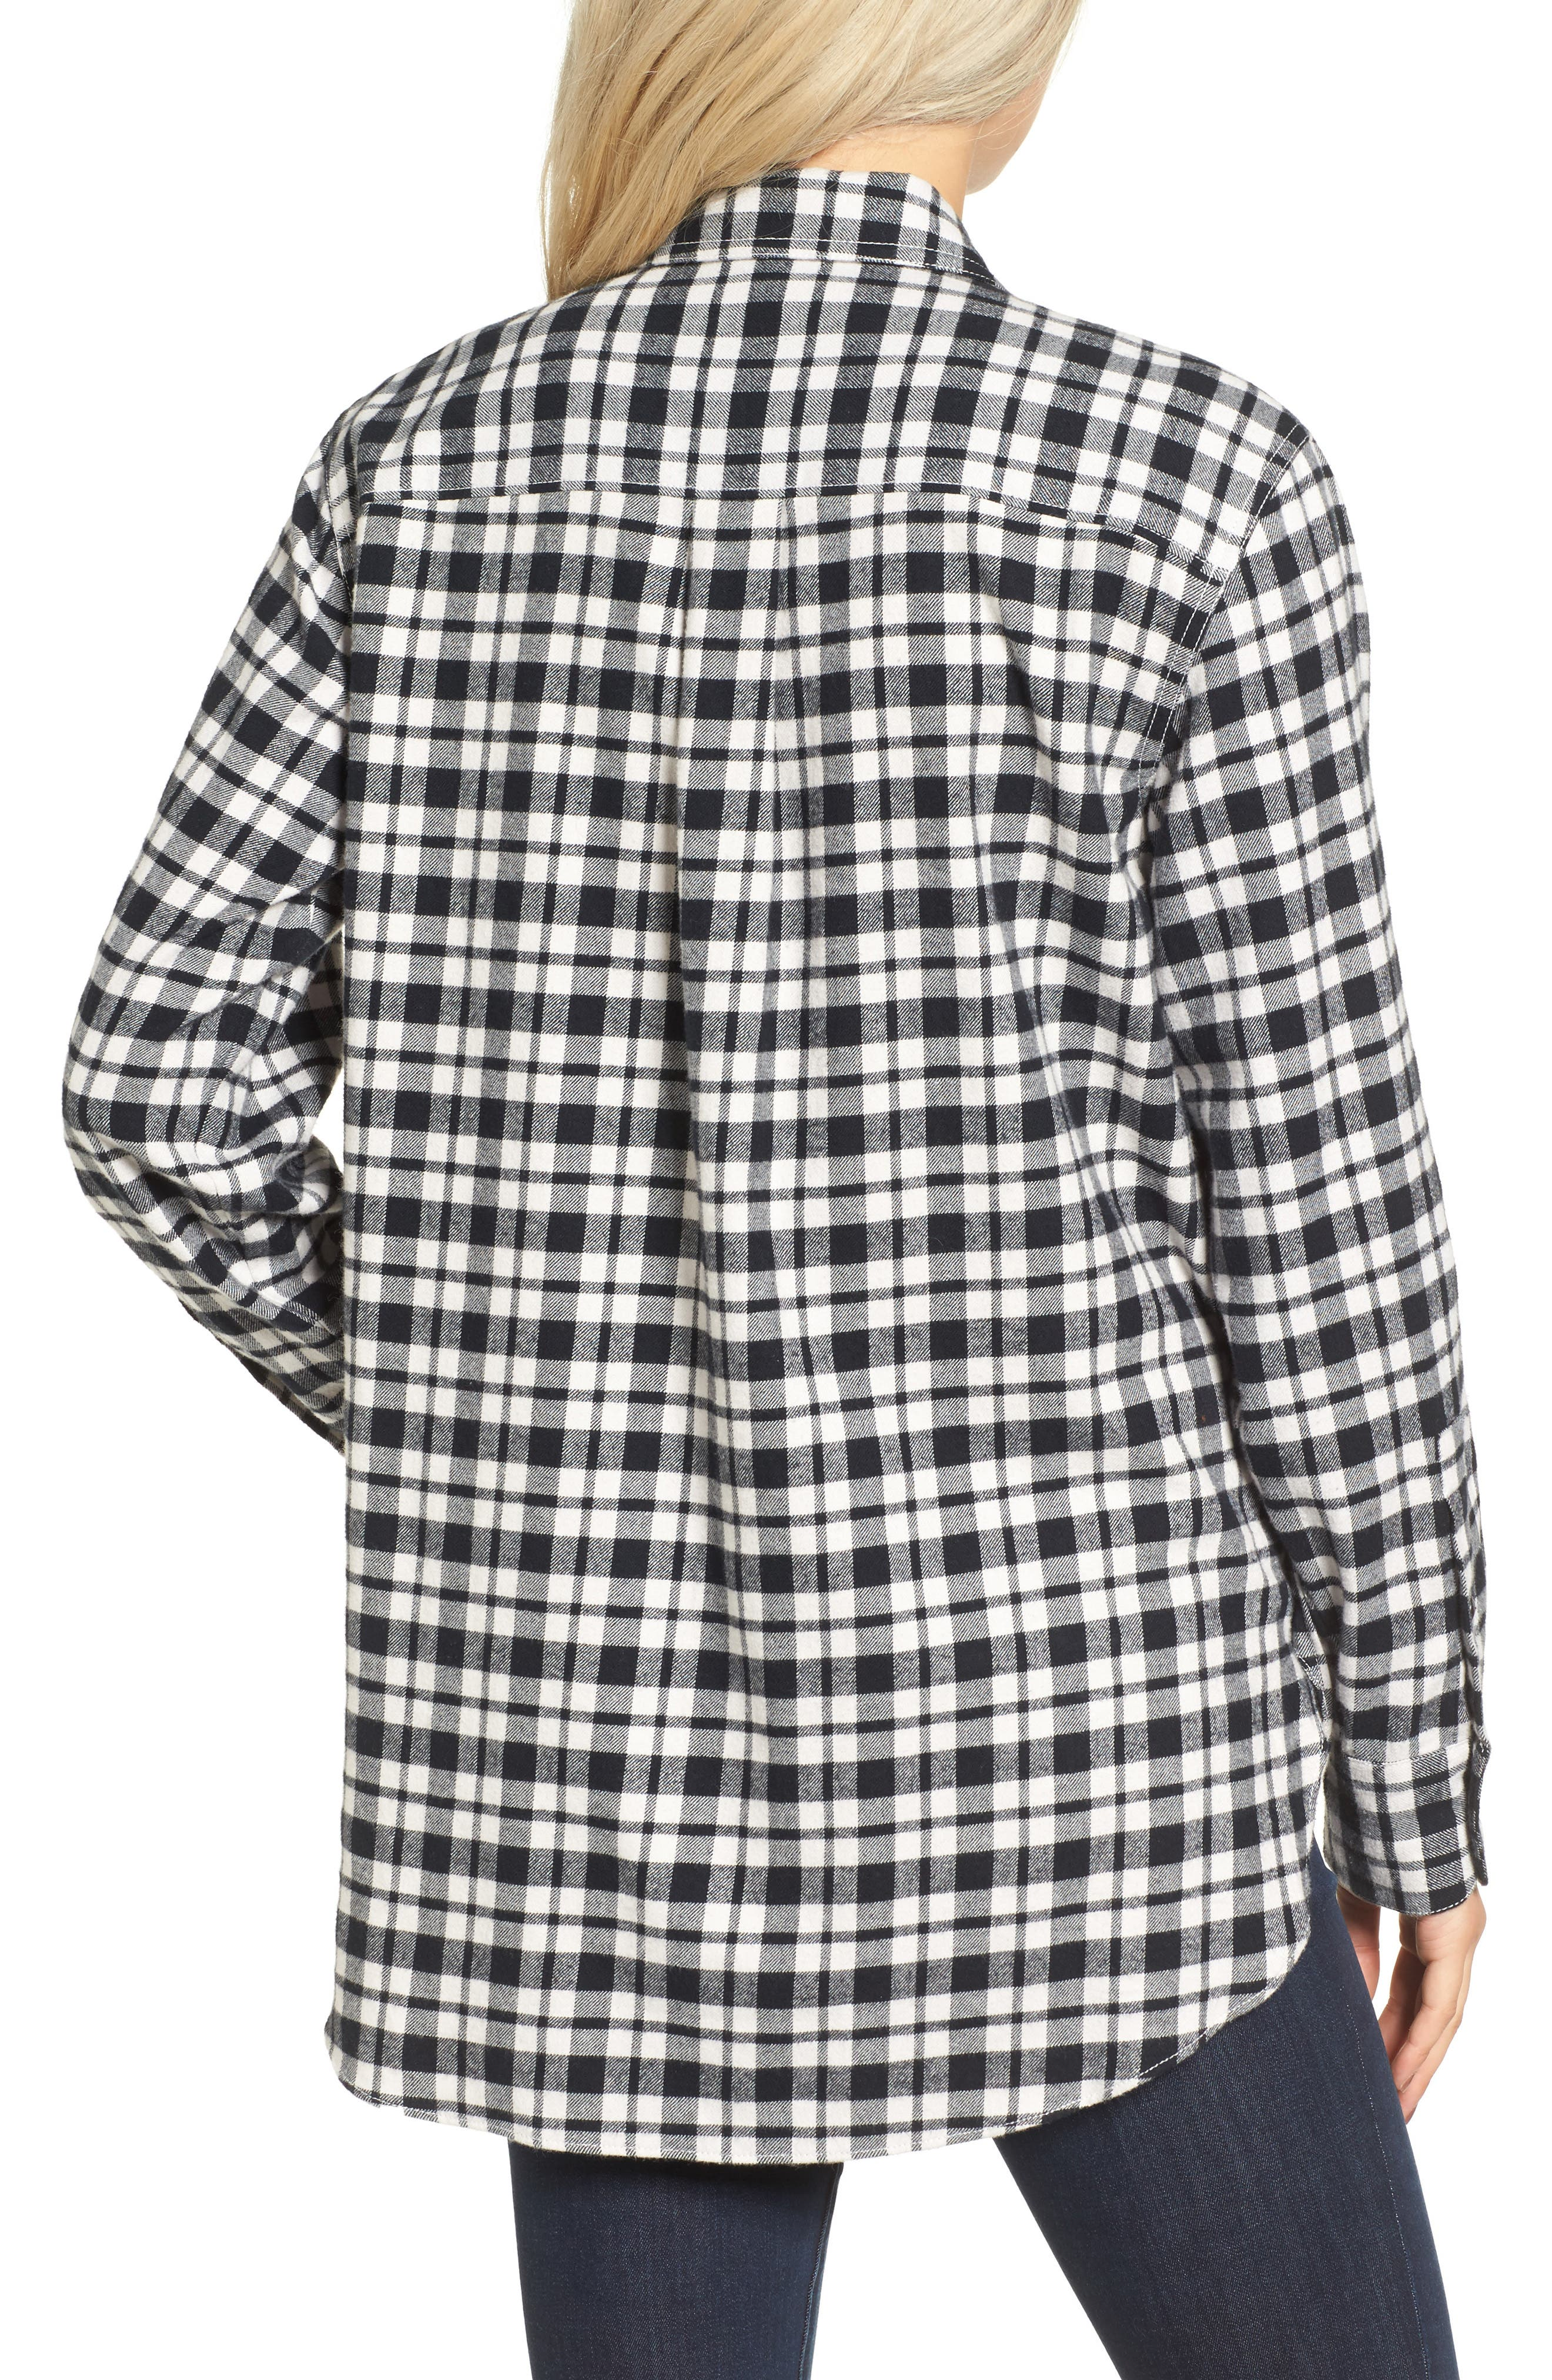 MADEWELL, Oversize Flannel Shirt, Alternate thumbnail 2, color, 002